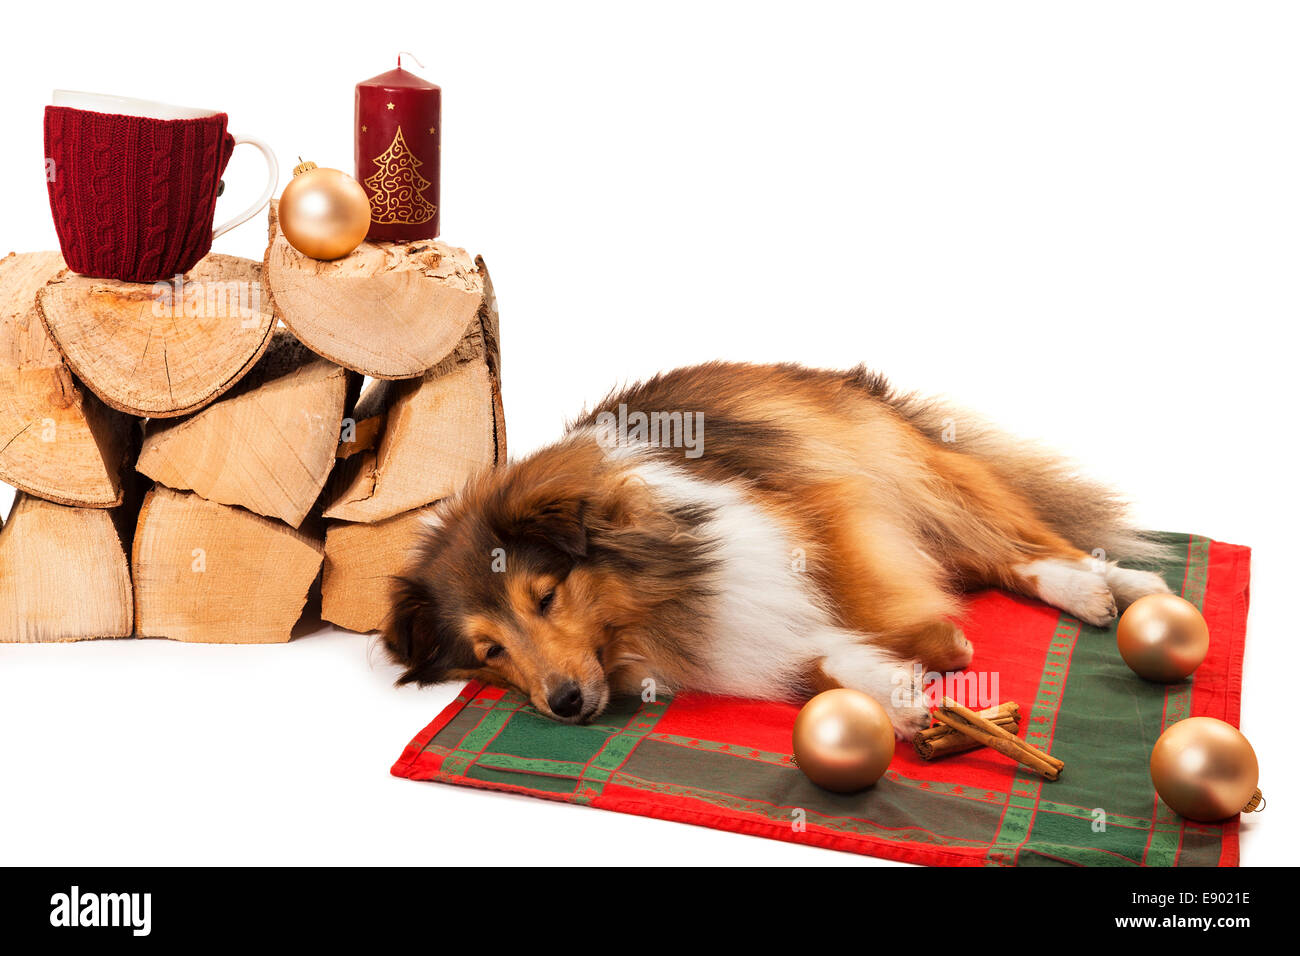 Dog sleeping near the knitted cup and christmas ornaments on stack of firewood - Stock Image